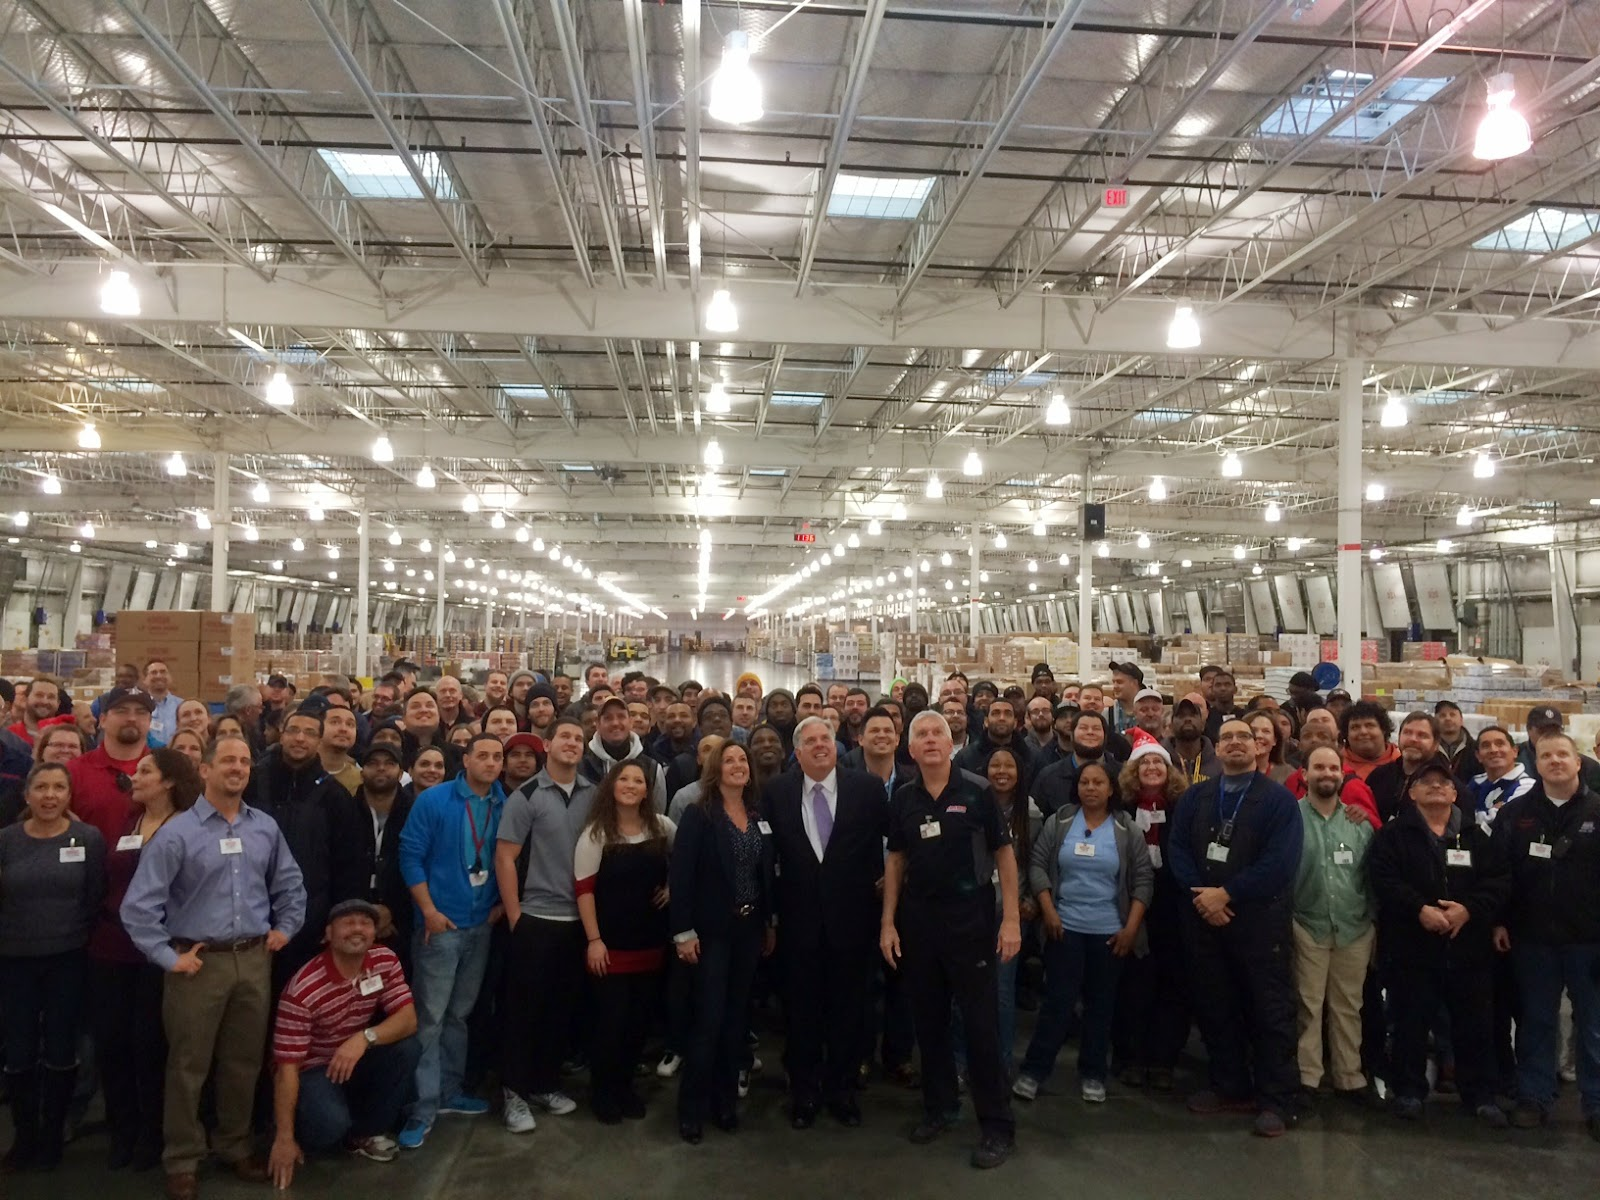 salisbury news 12 13 14 monrovia md governor elect hogan today ed a costco whole regional distribution center in frederick county for a meeting national and local